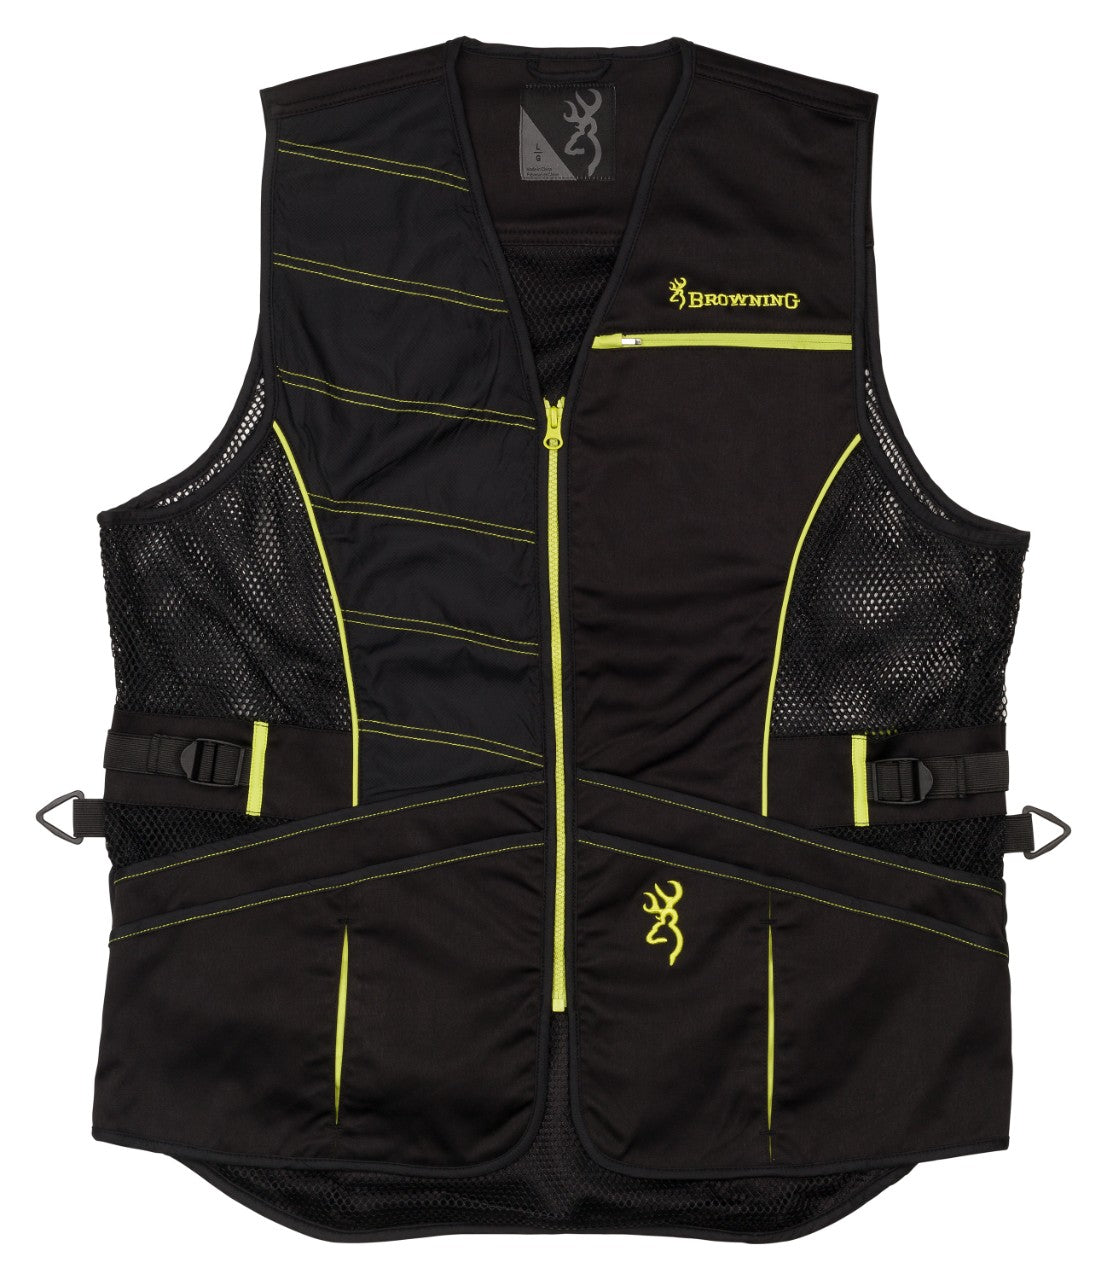 VST,ACE,BLACK/VOLT,L